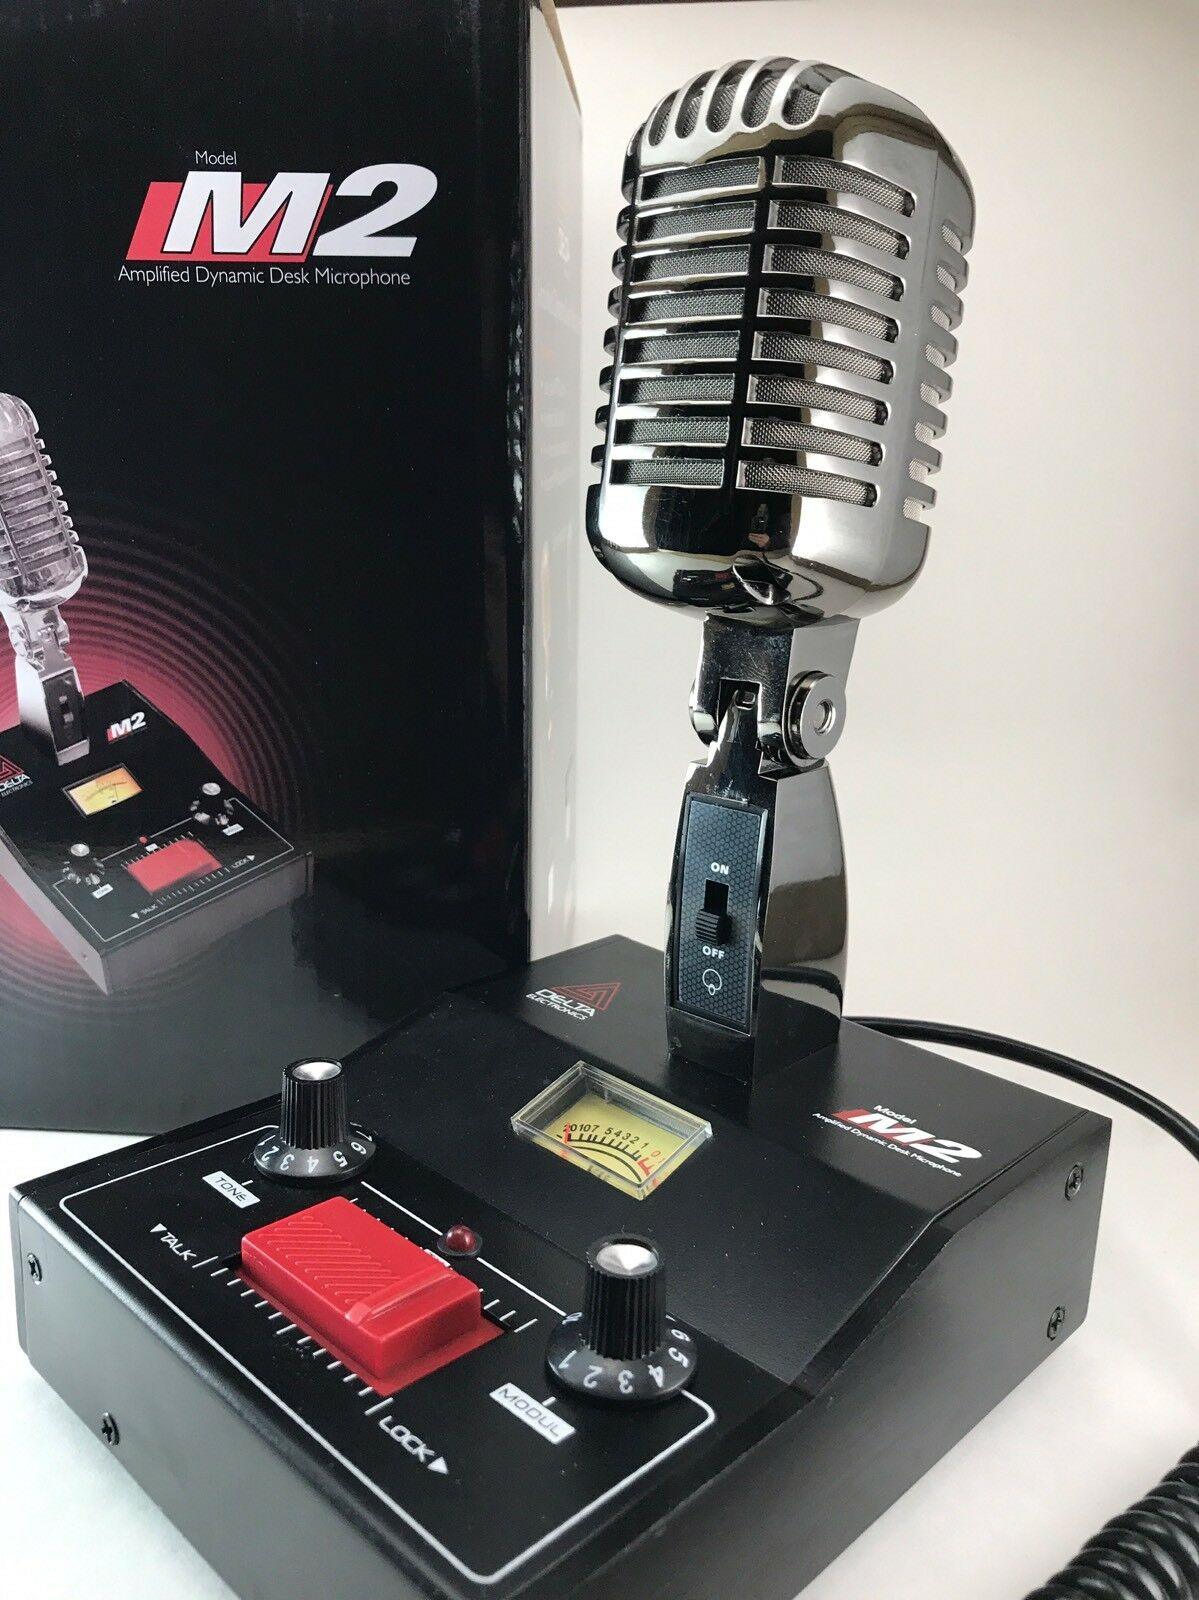 BLACK CHROME COBRA GALAXY DELTA M2 AMPLIFIED POWER BASE MICROPHONE CB HAM MIC. Available Now for 139.95